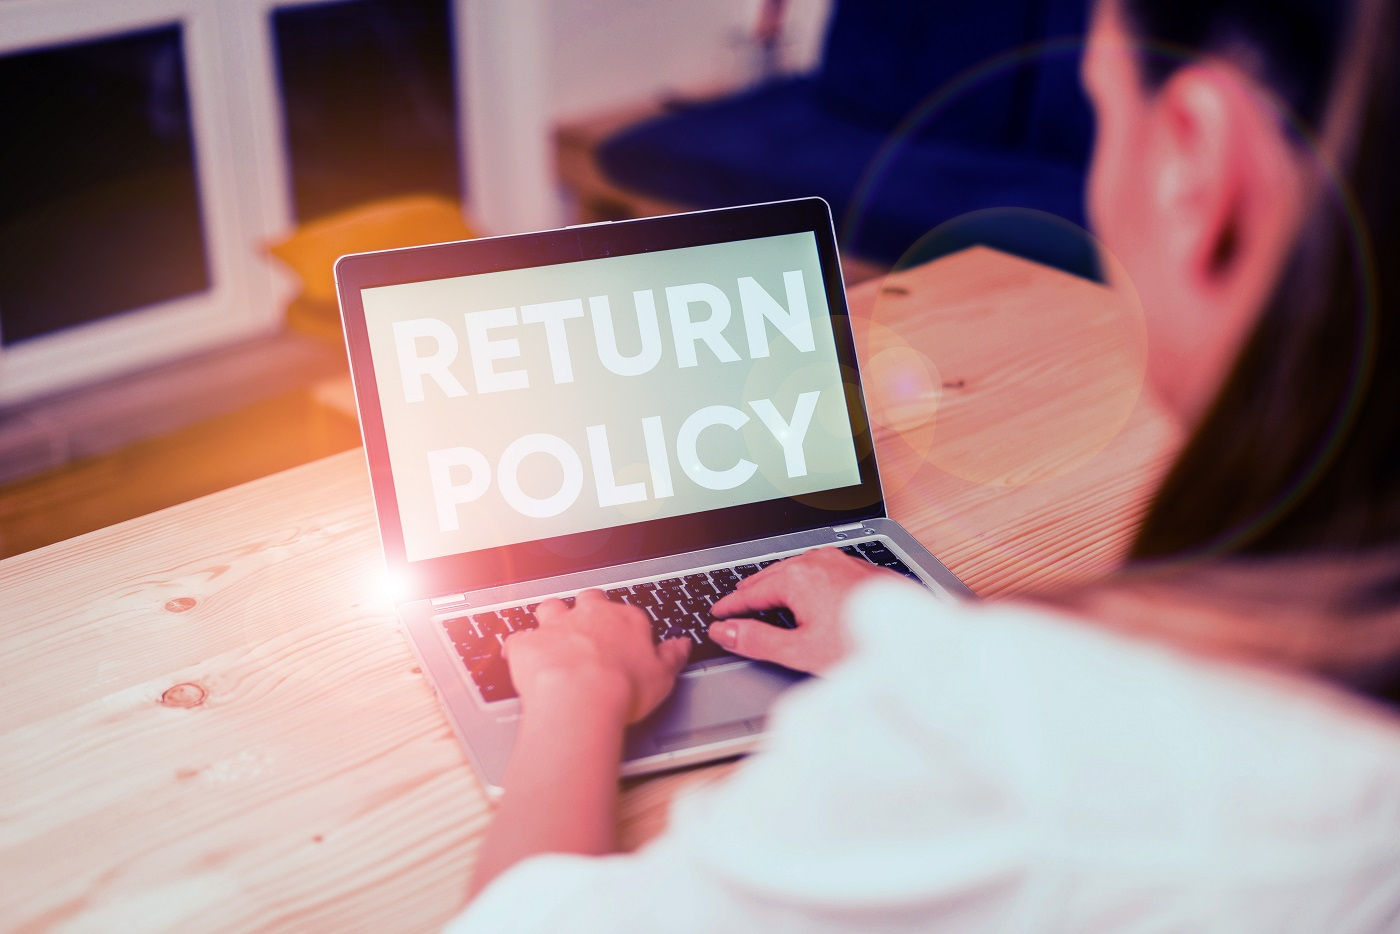 return policy issues